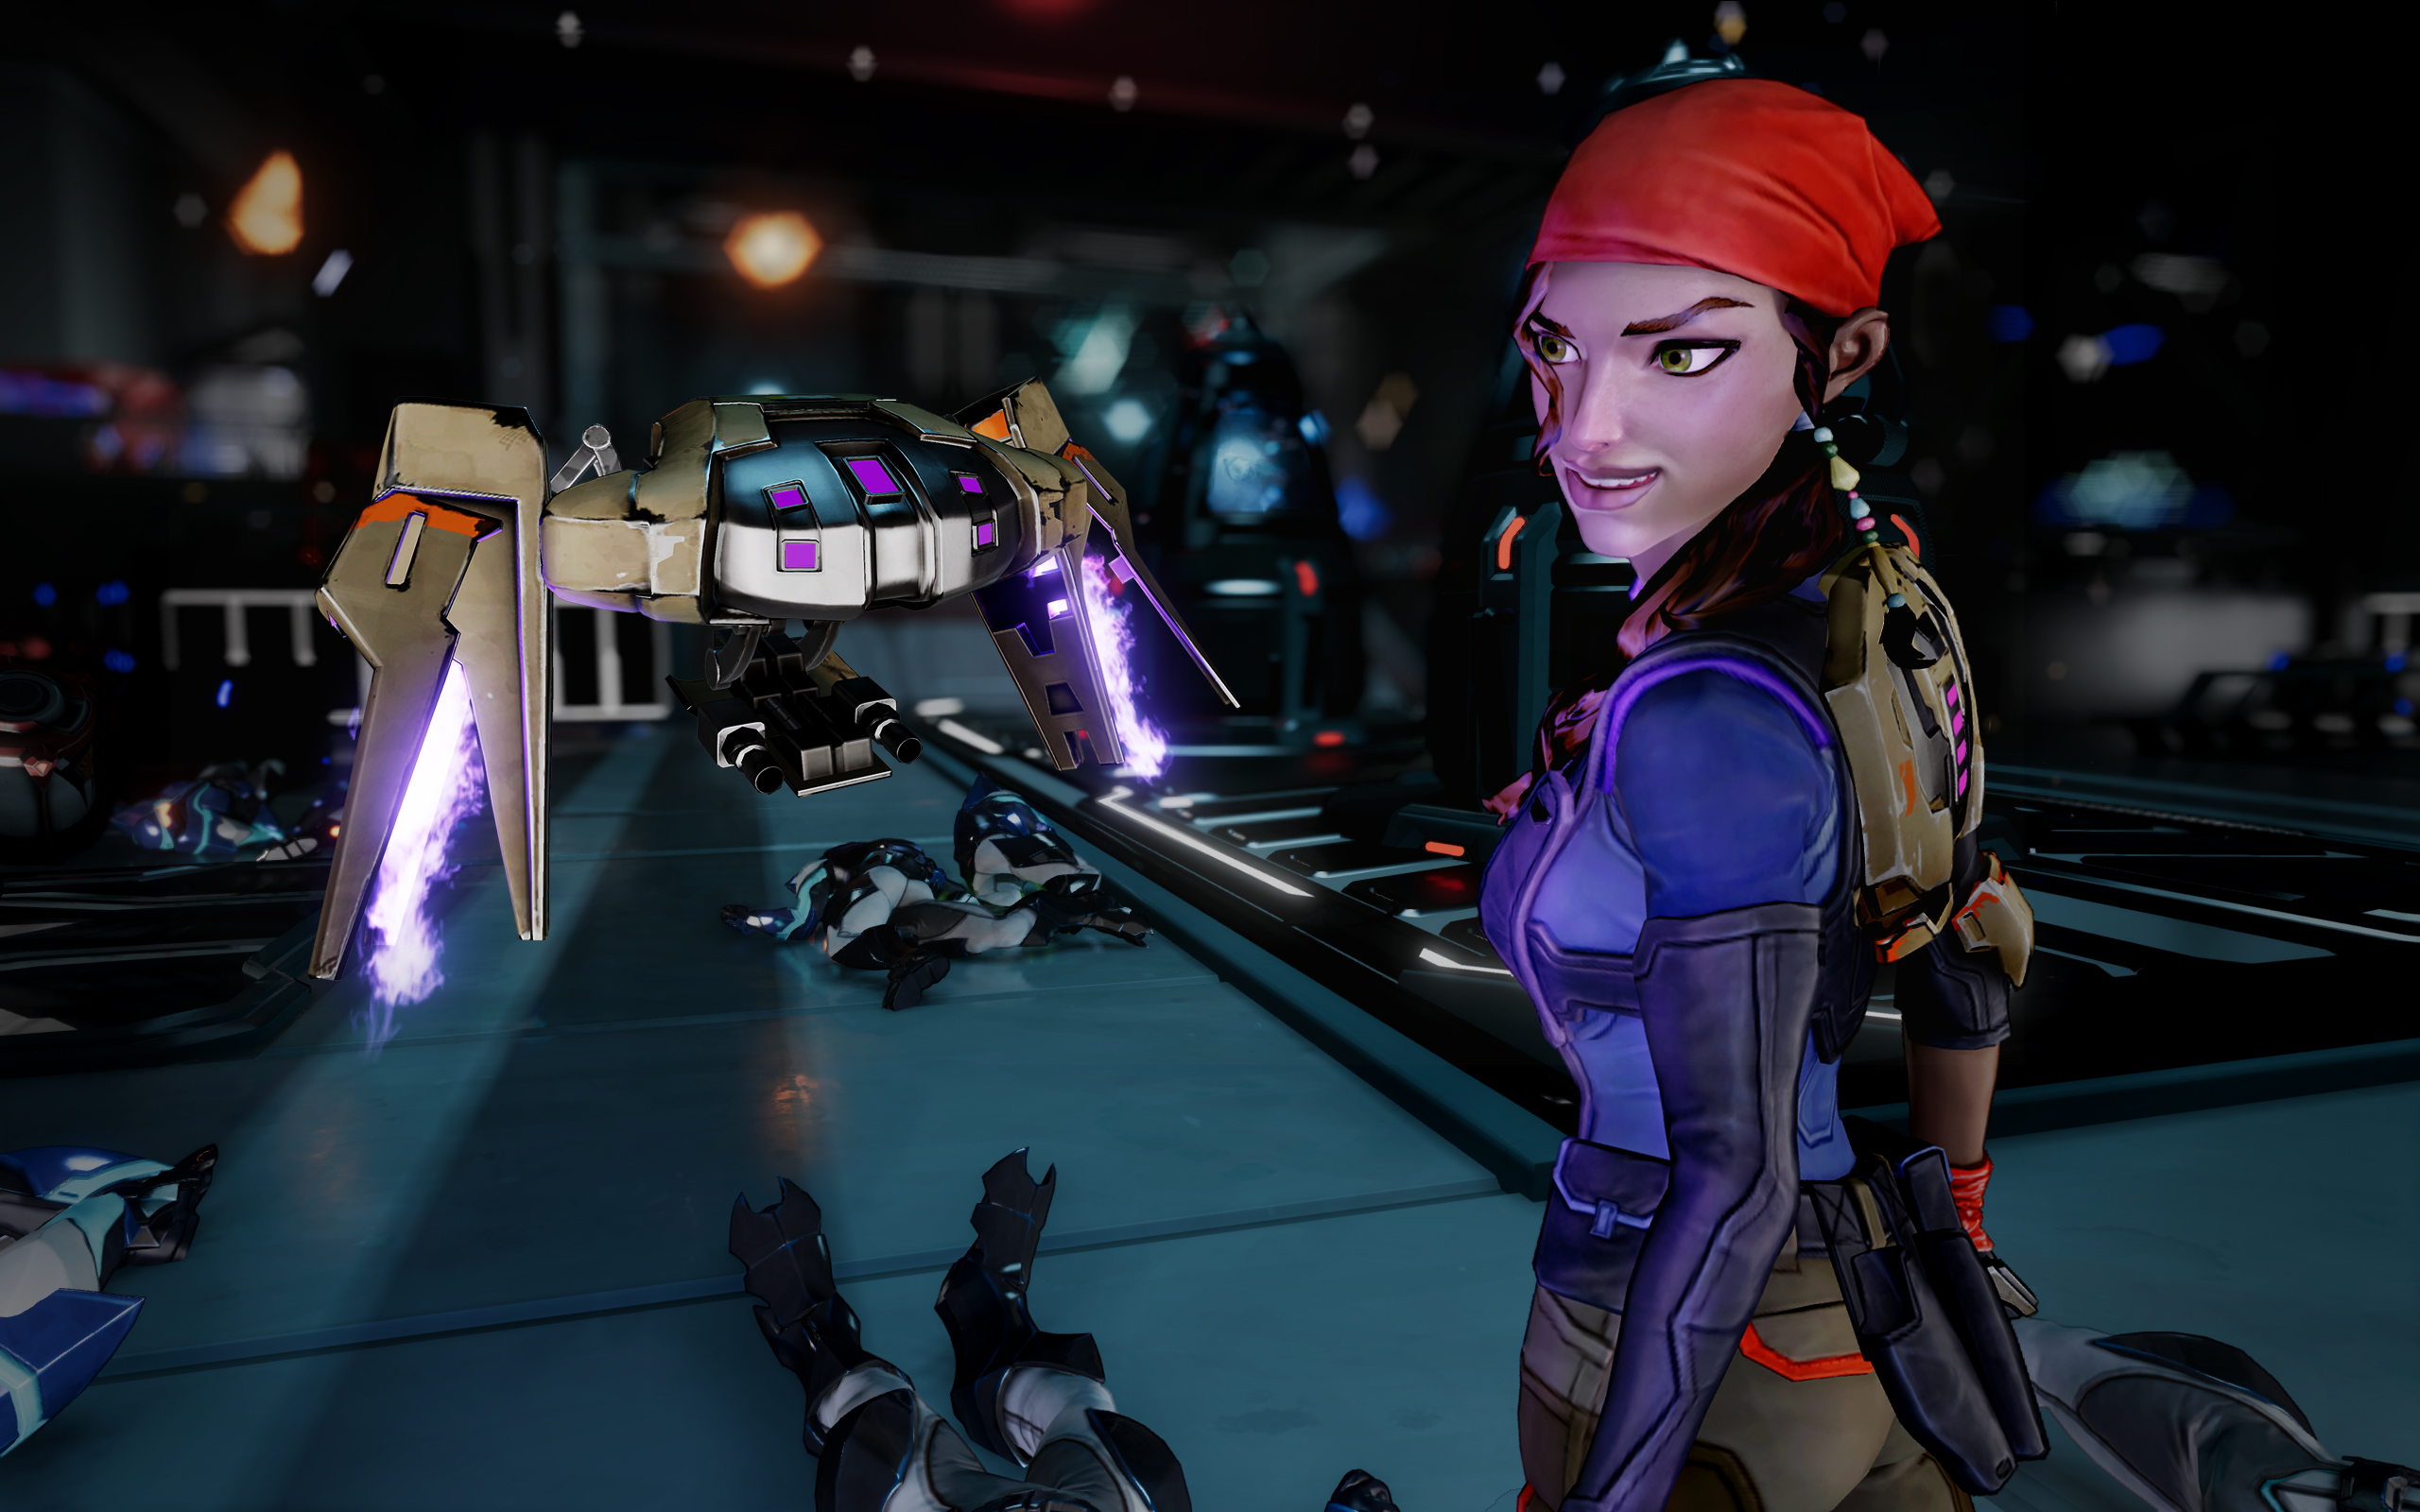 Обои game, weapon, gun, girl, Agents of Mayhem. Игры foto 14